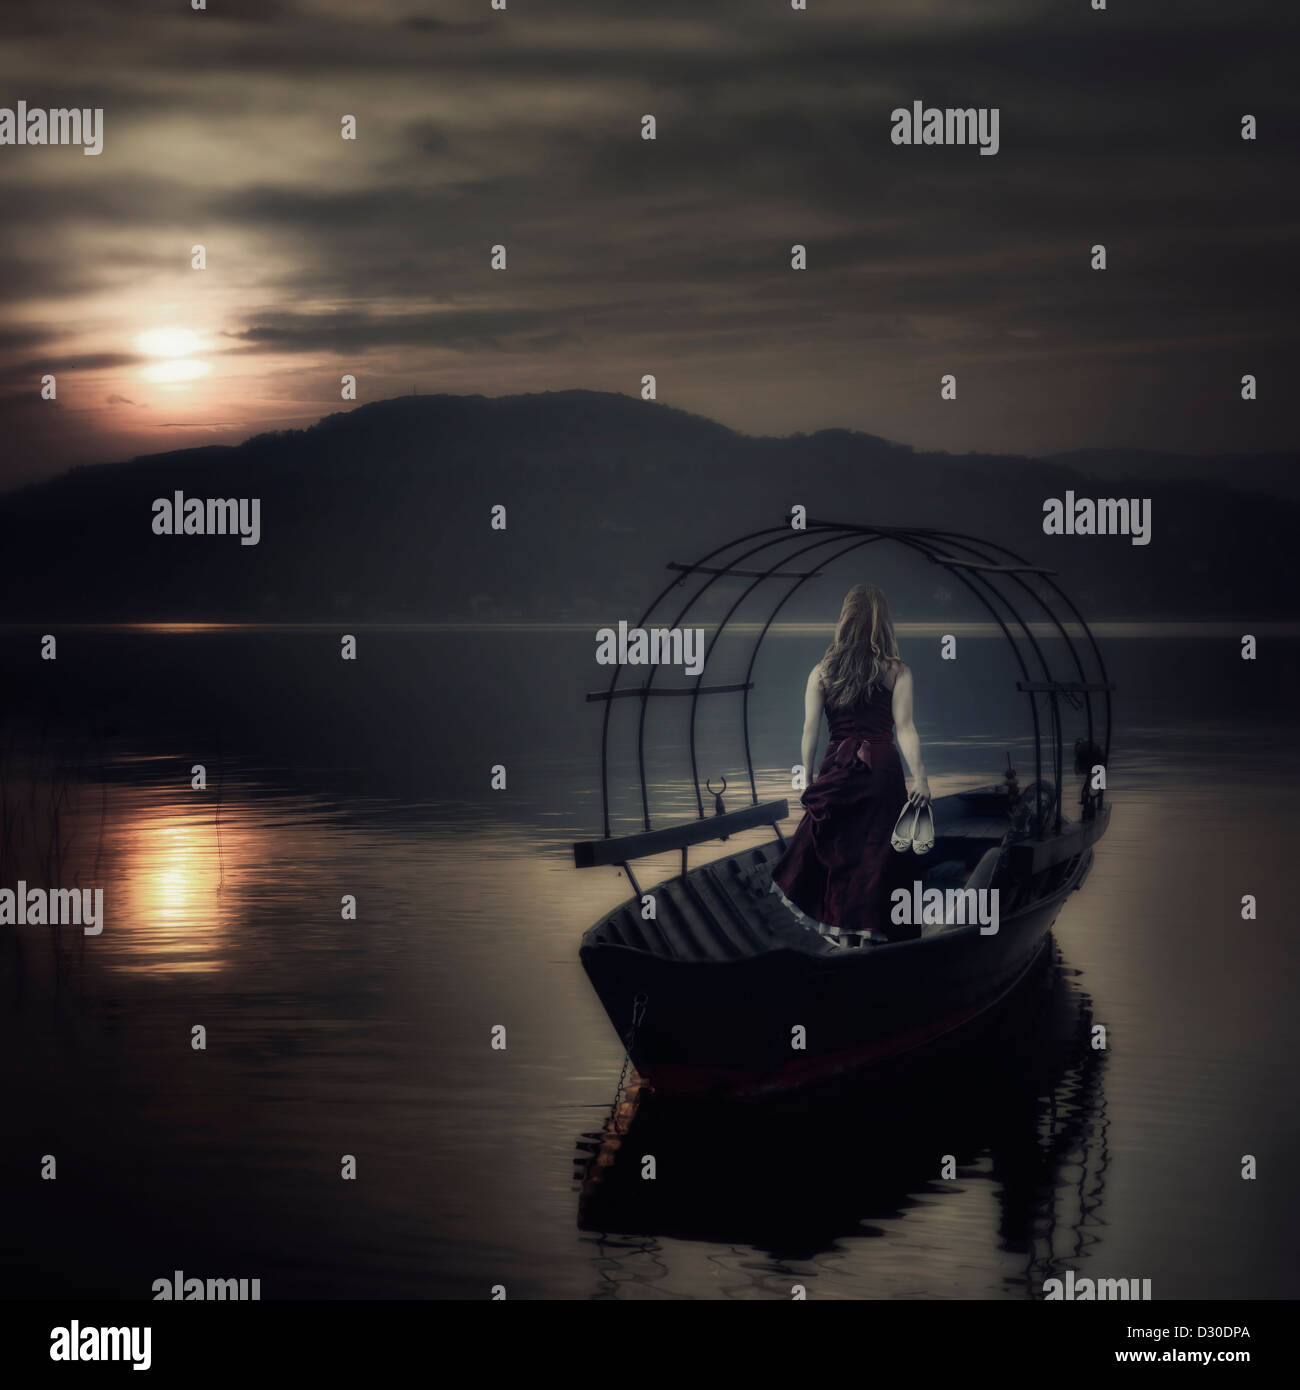 a woman in a red dress on an old fishing boat - Stock Image